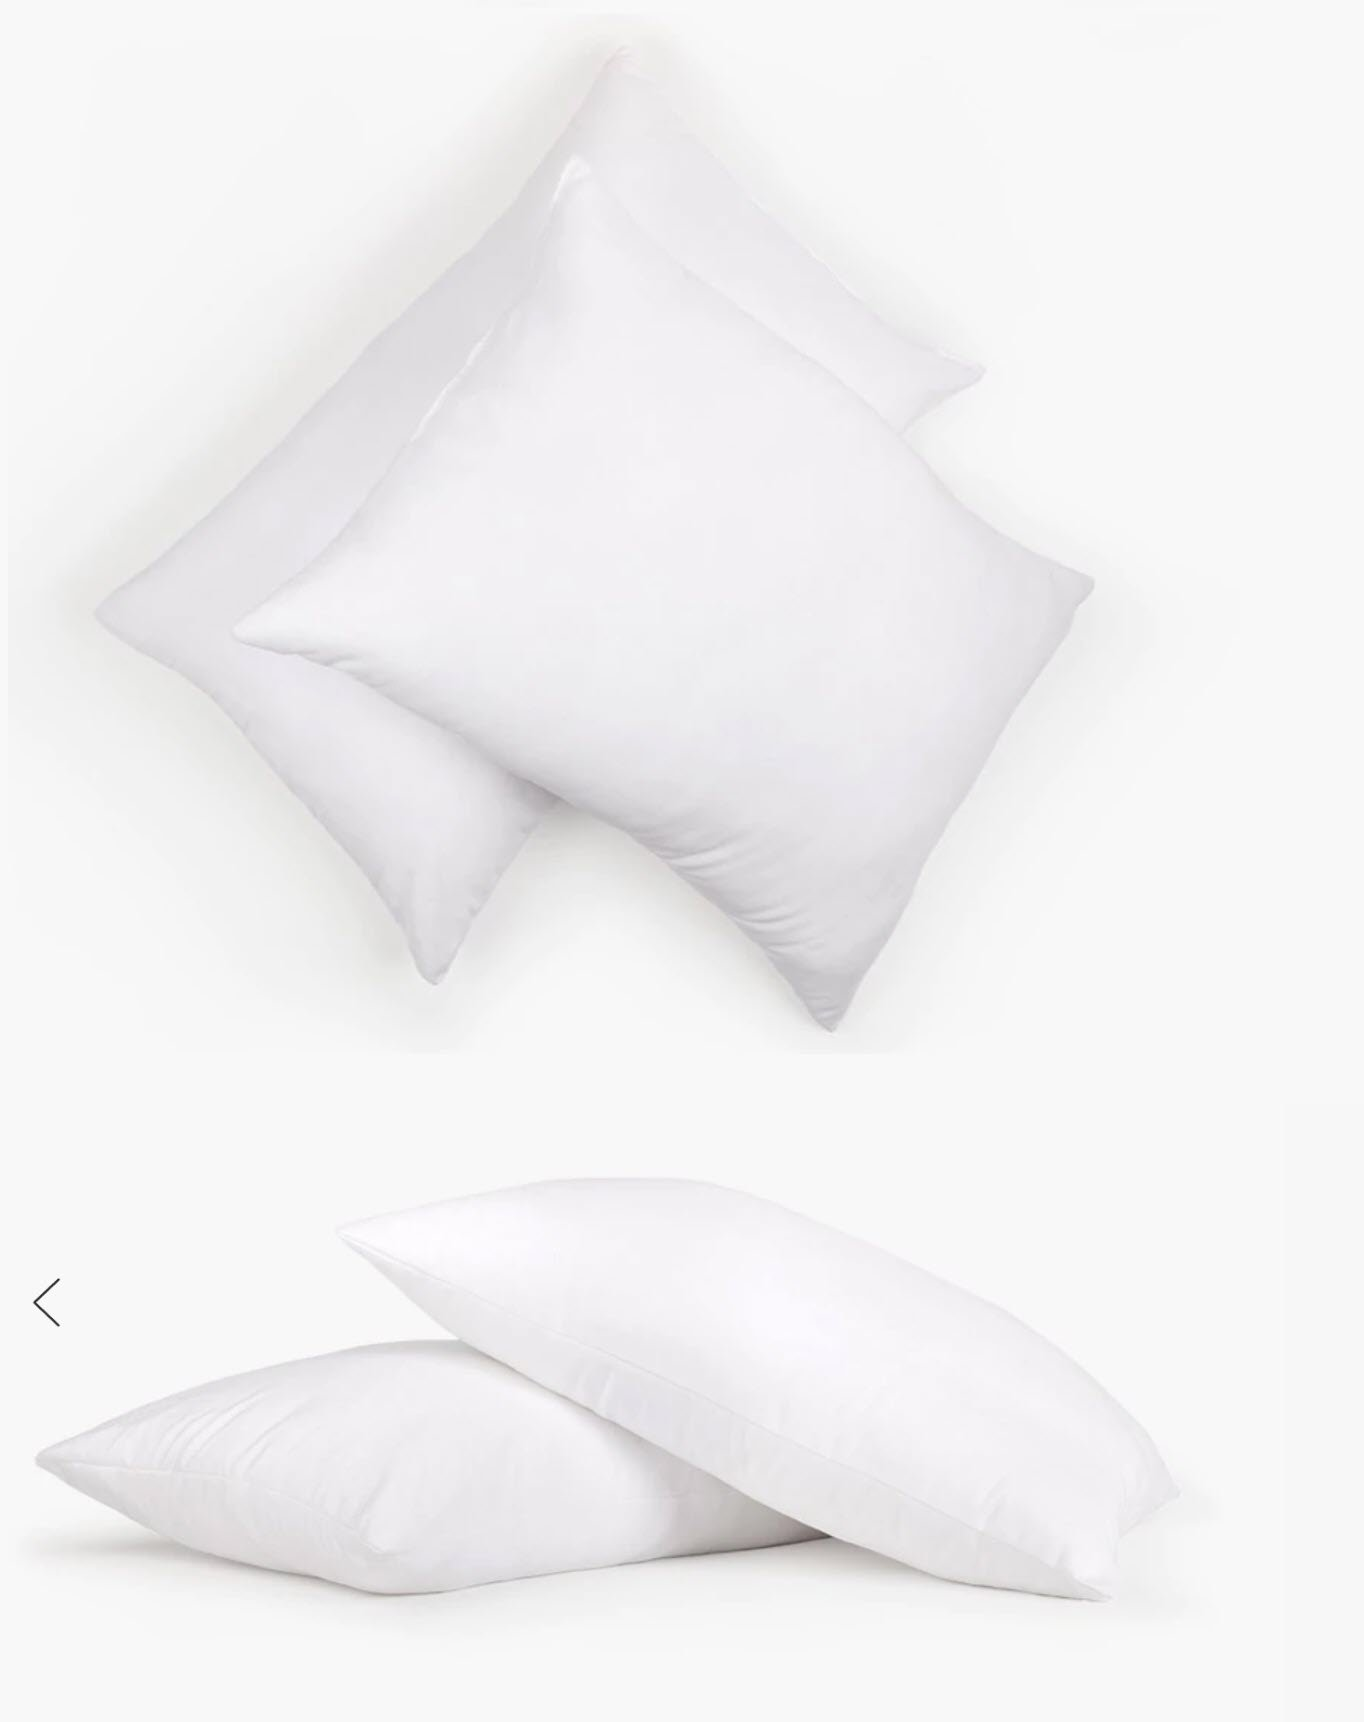 Better Night's Sleep Goldilocks-Zone Pillows